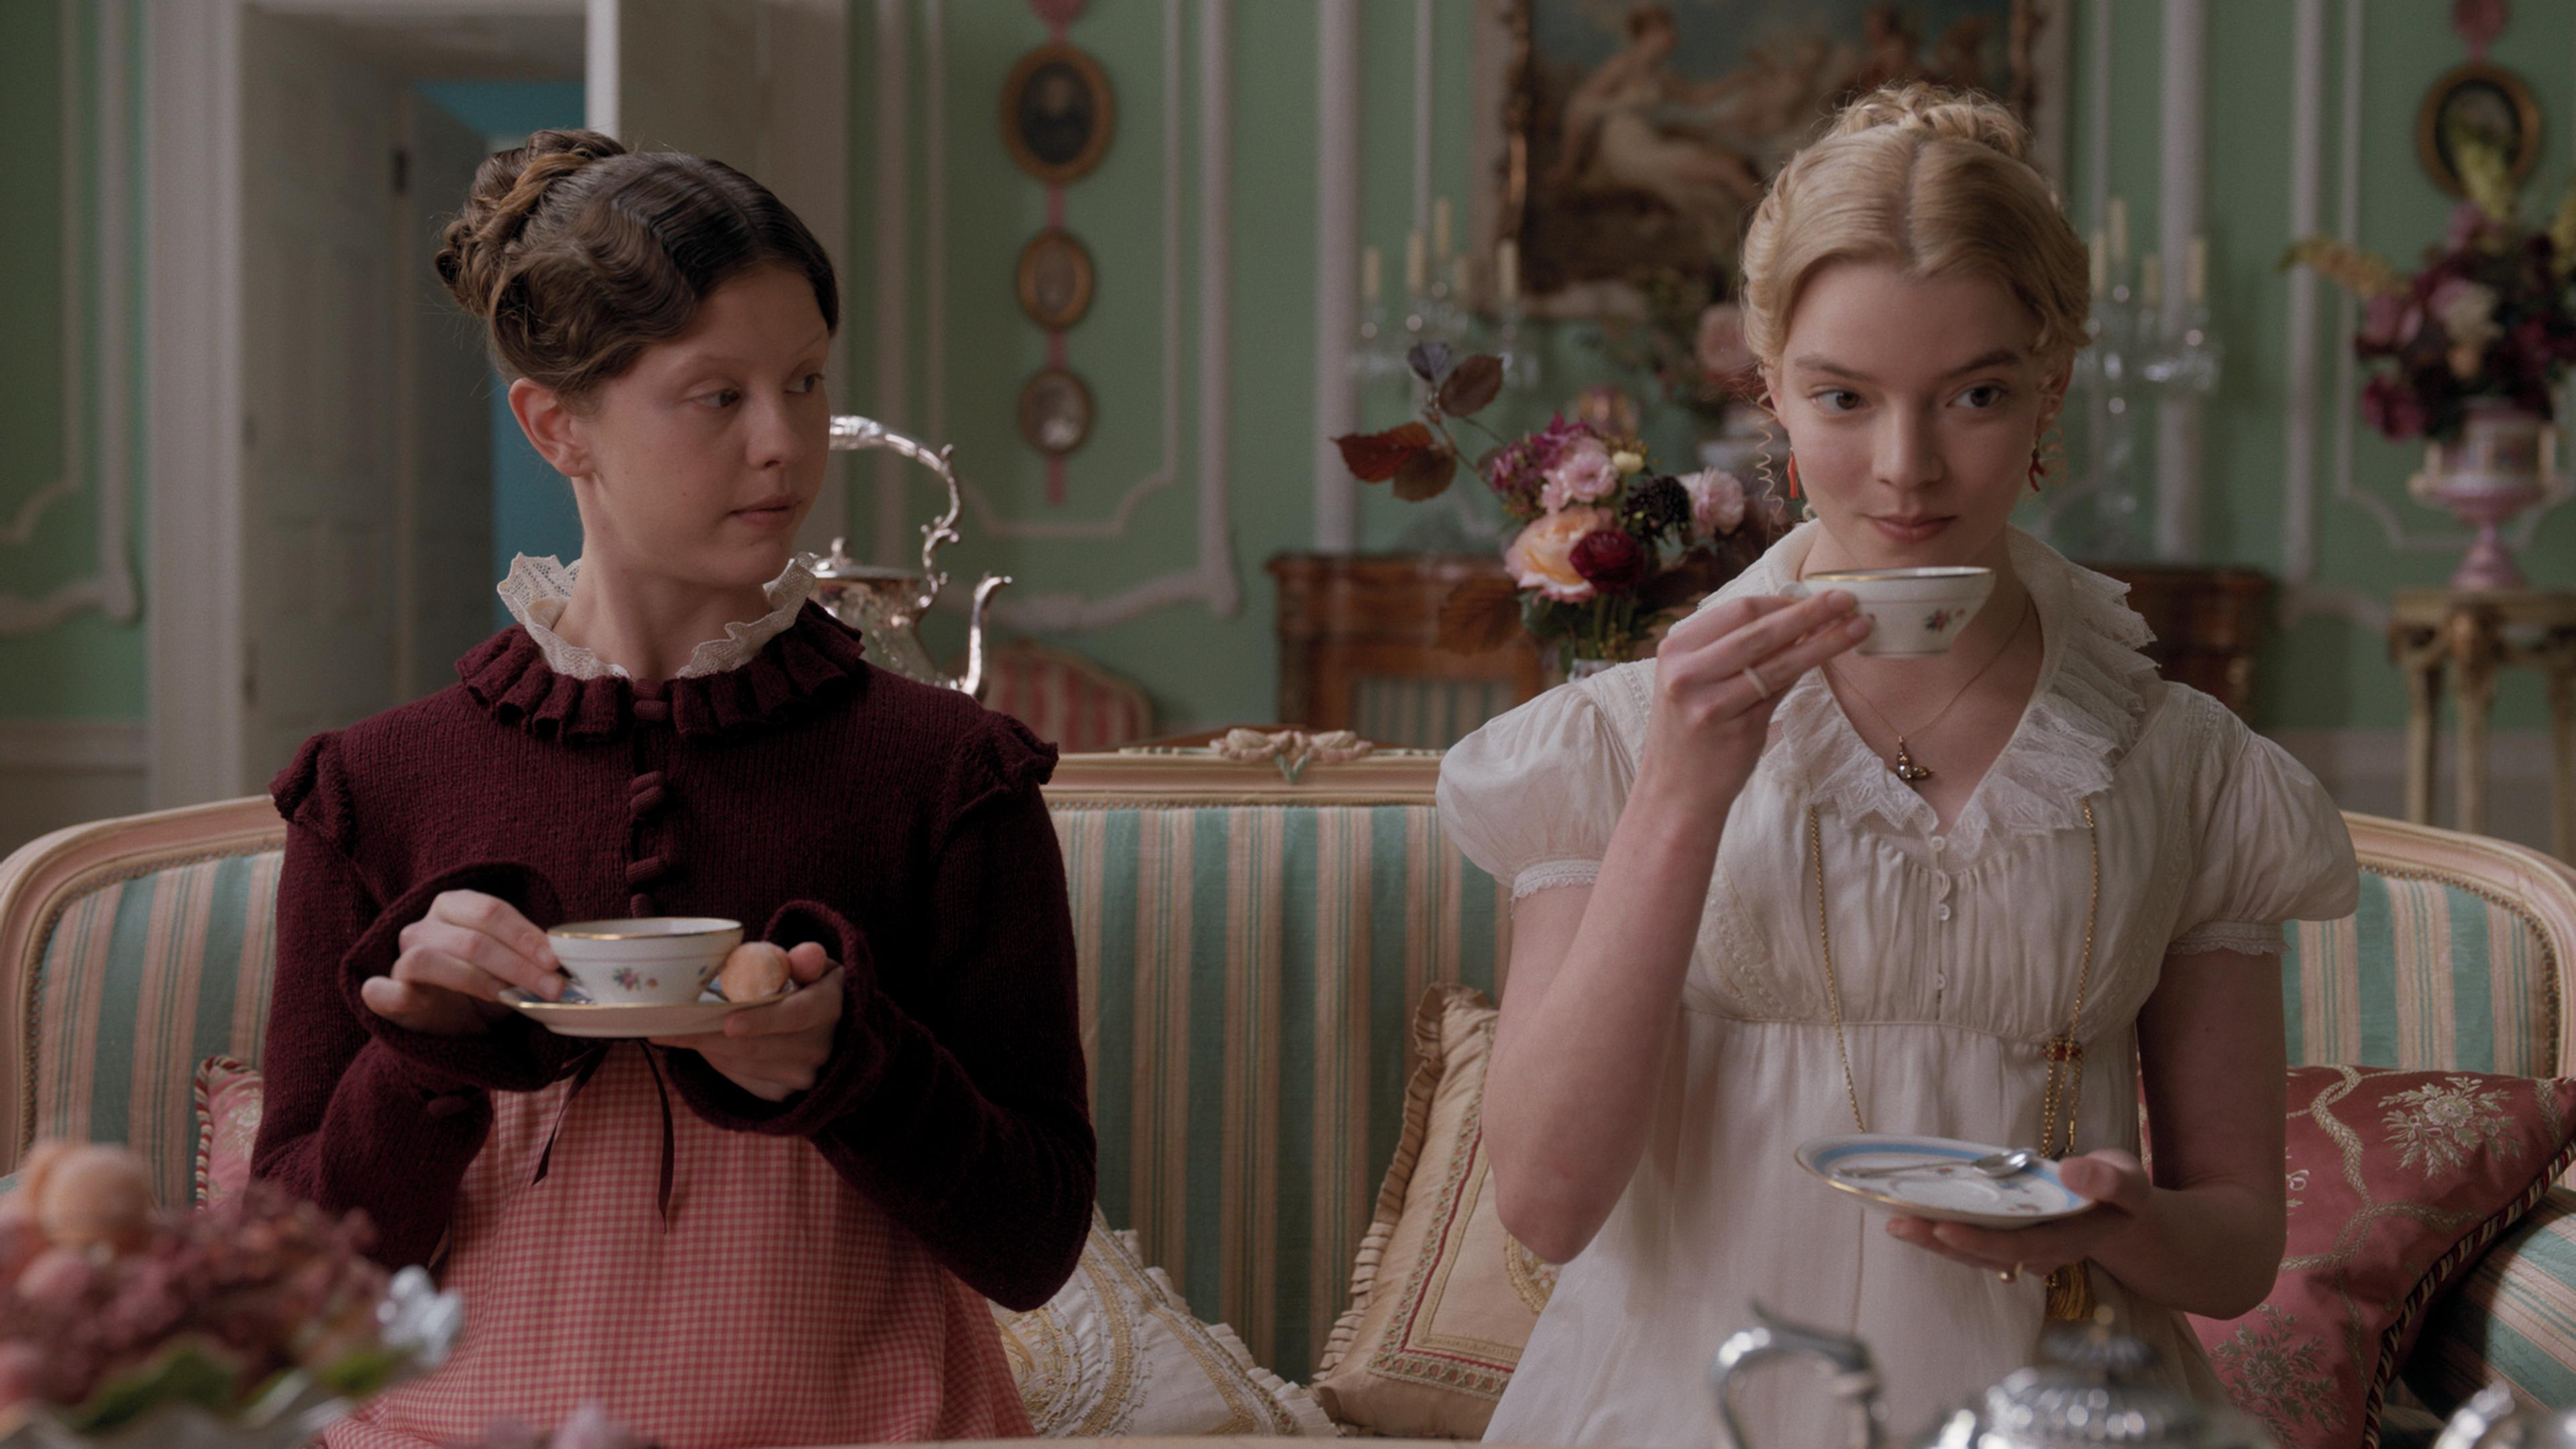 Mia Goth's Harriet Smith and Anya Taylor-Joy's Emma Woodhouse take tea in a still from <i>Emma</i>. (Focus Features)